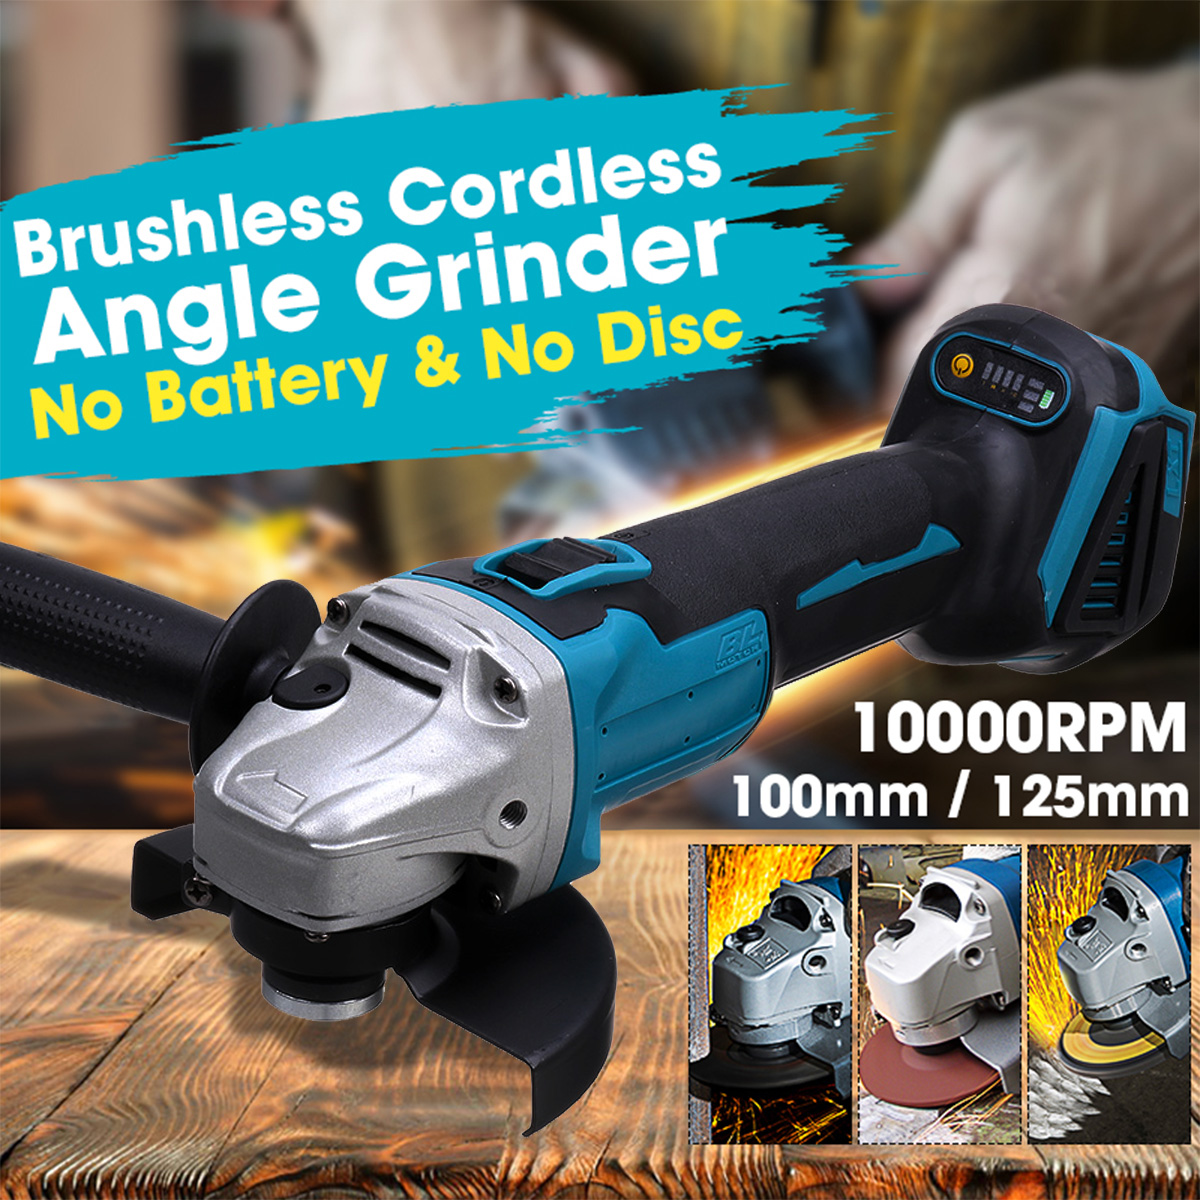 100mm/125mm Brushless Cordless Impact Angle Grinder Variable Speed Grinder Cutting Machine For 18V Makita Battery|Grinders|   - AliExpress